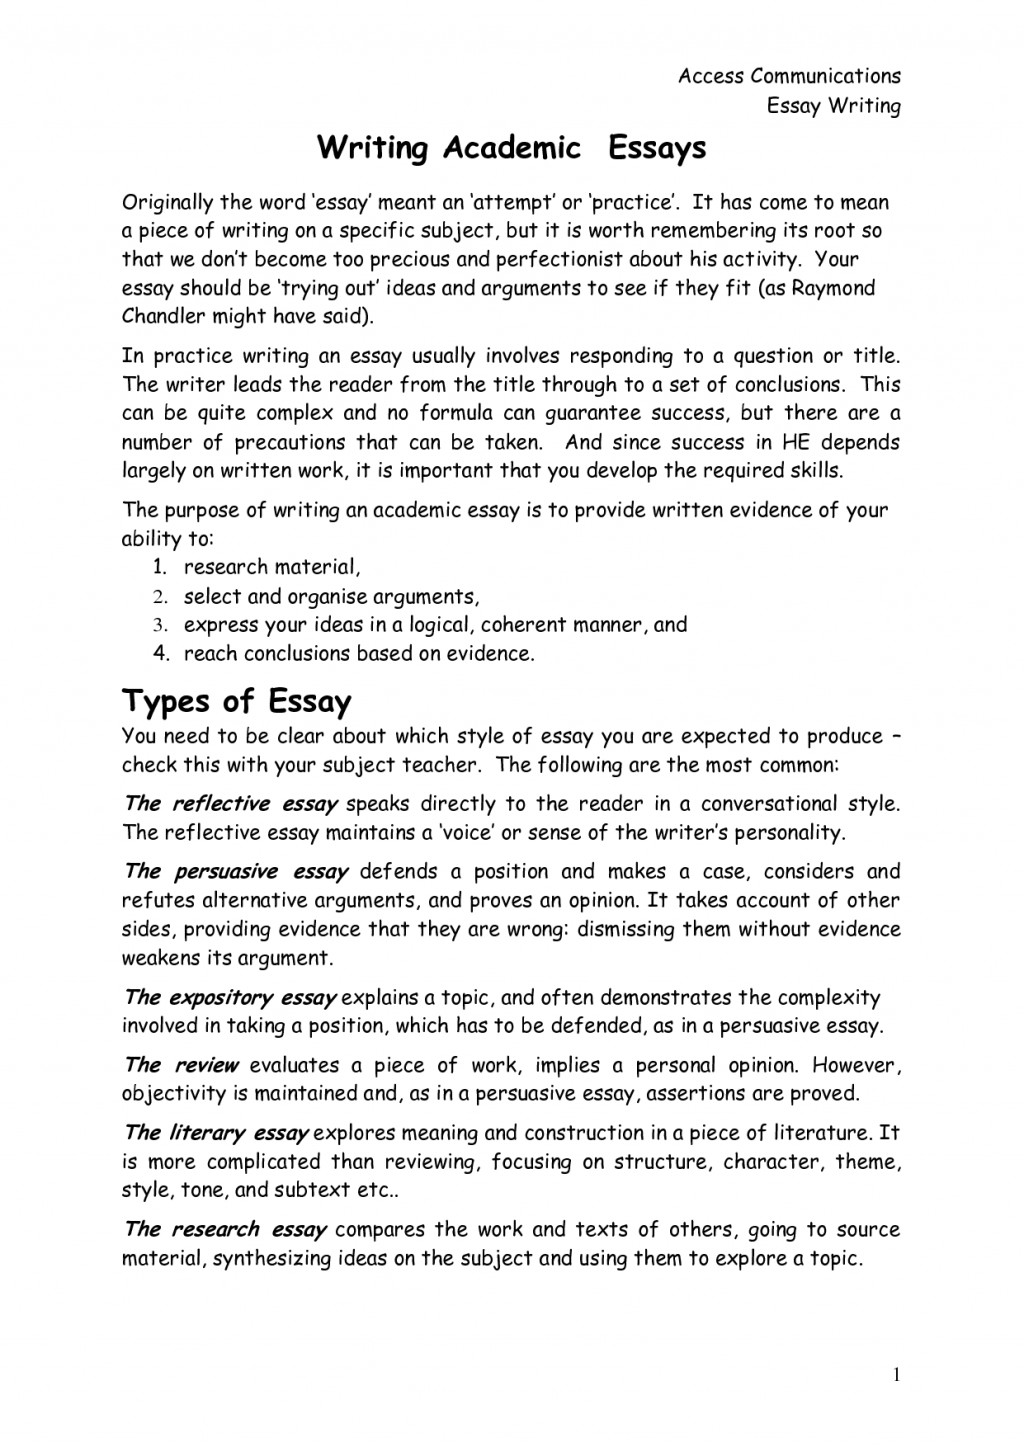 019 Write My Essay For Me Example Surprising Free Online Generator Large